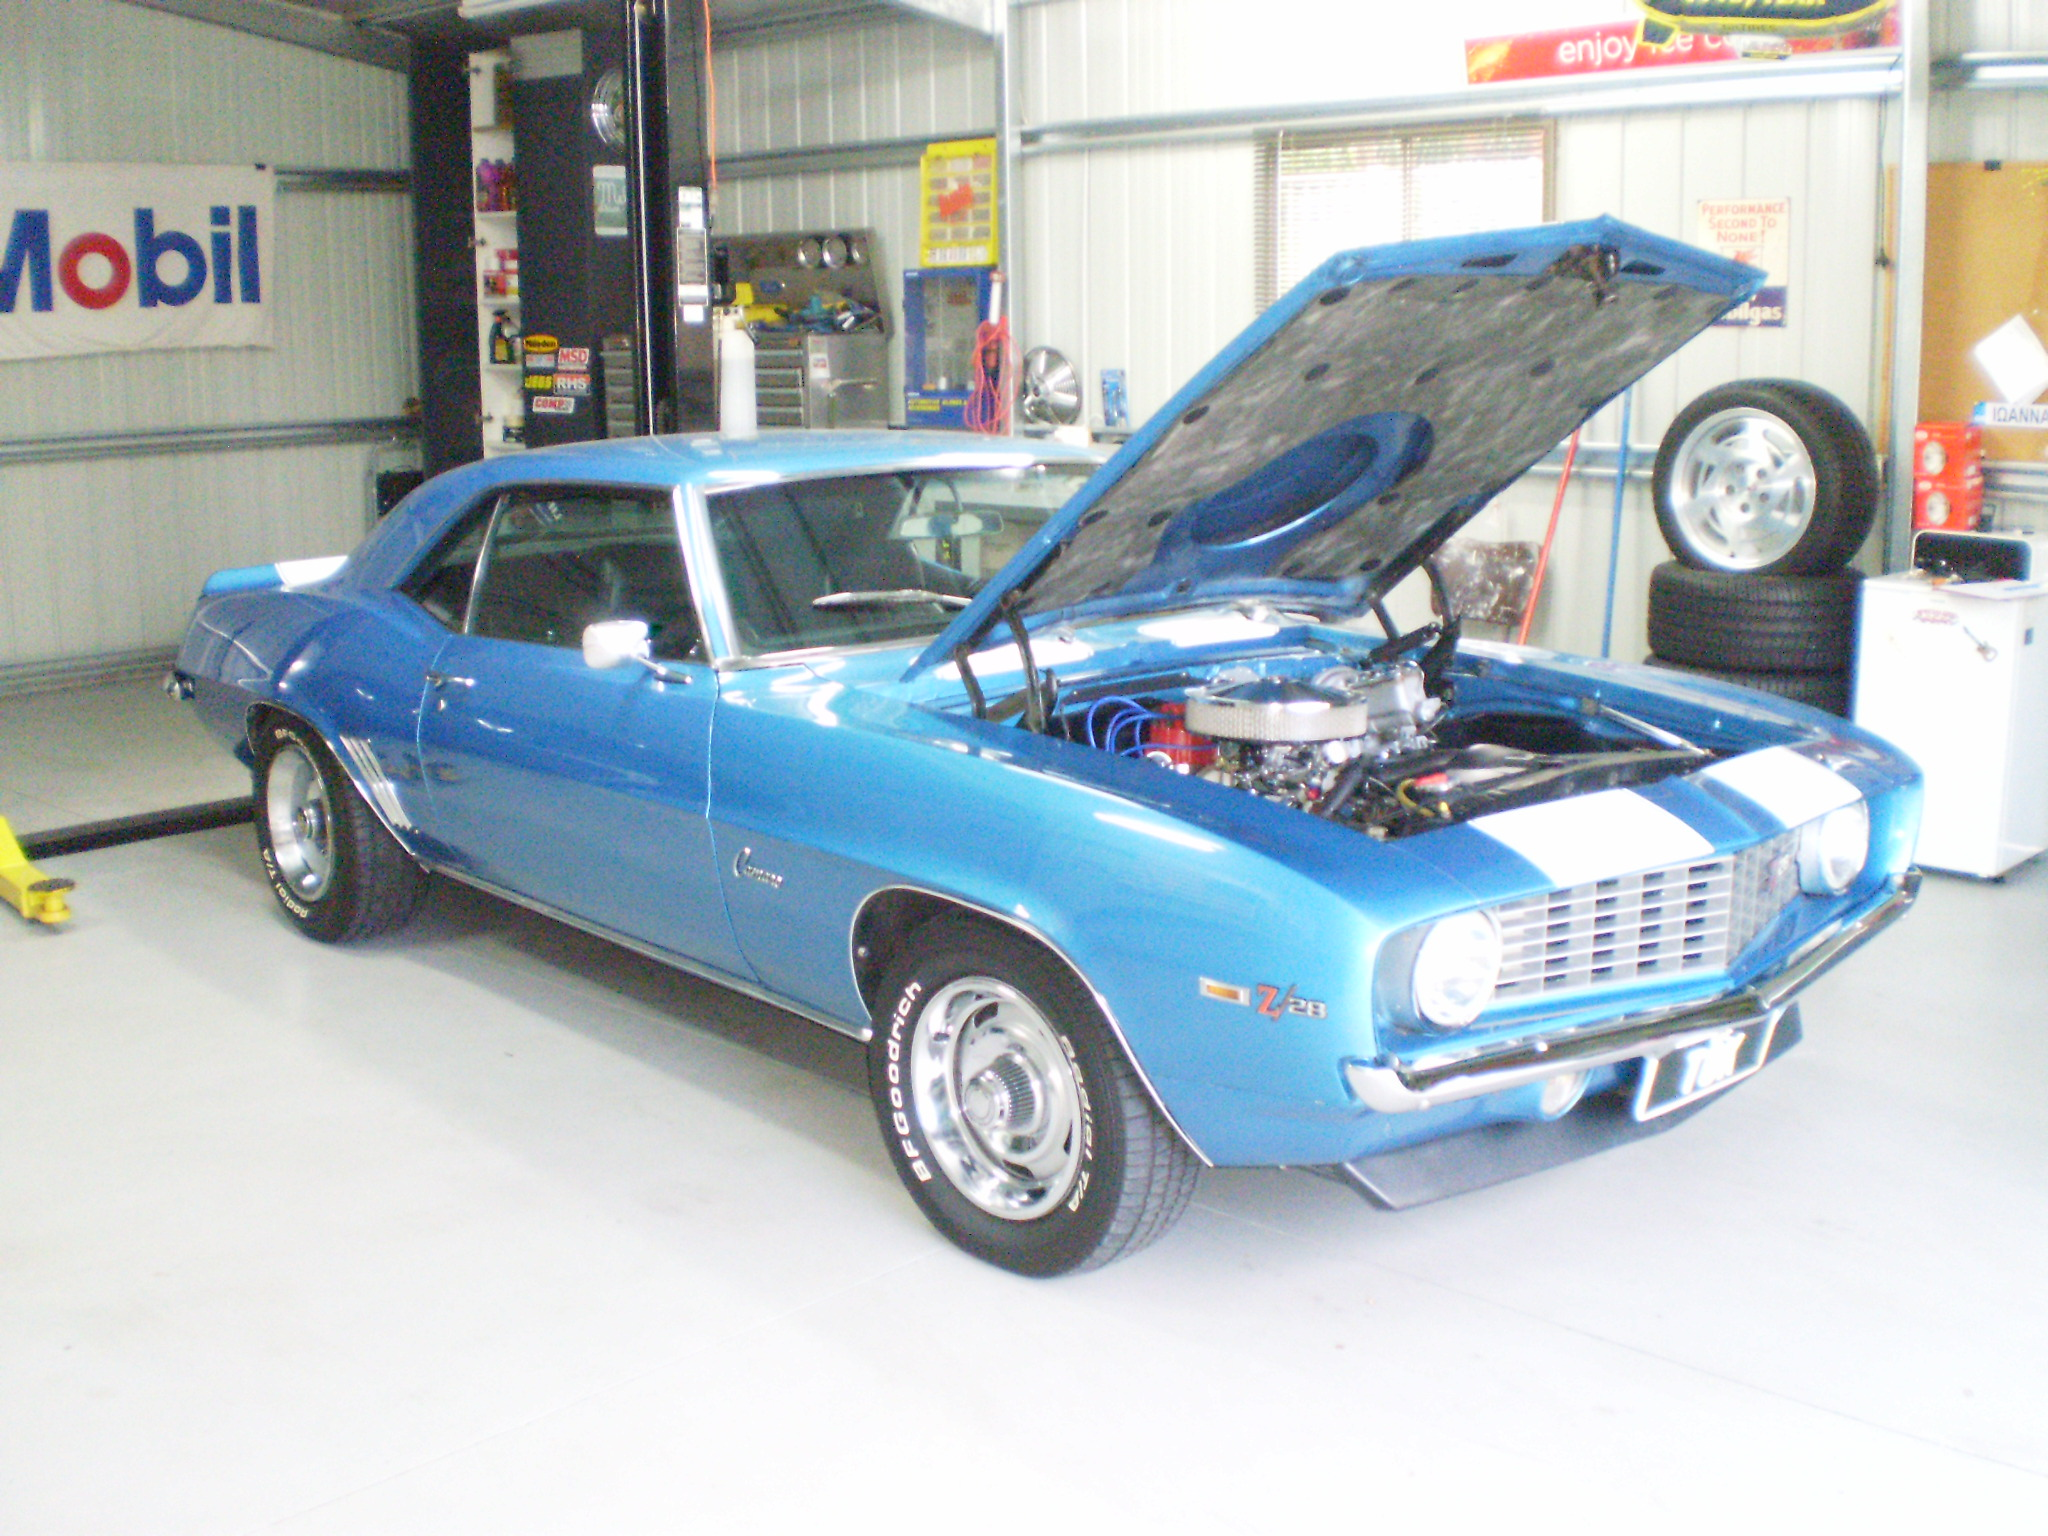 1969 Chevrolet Camaro import